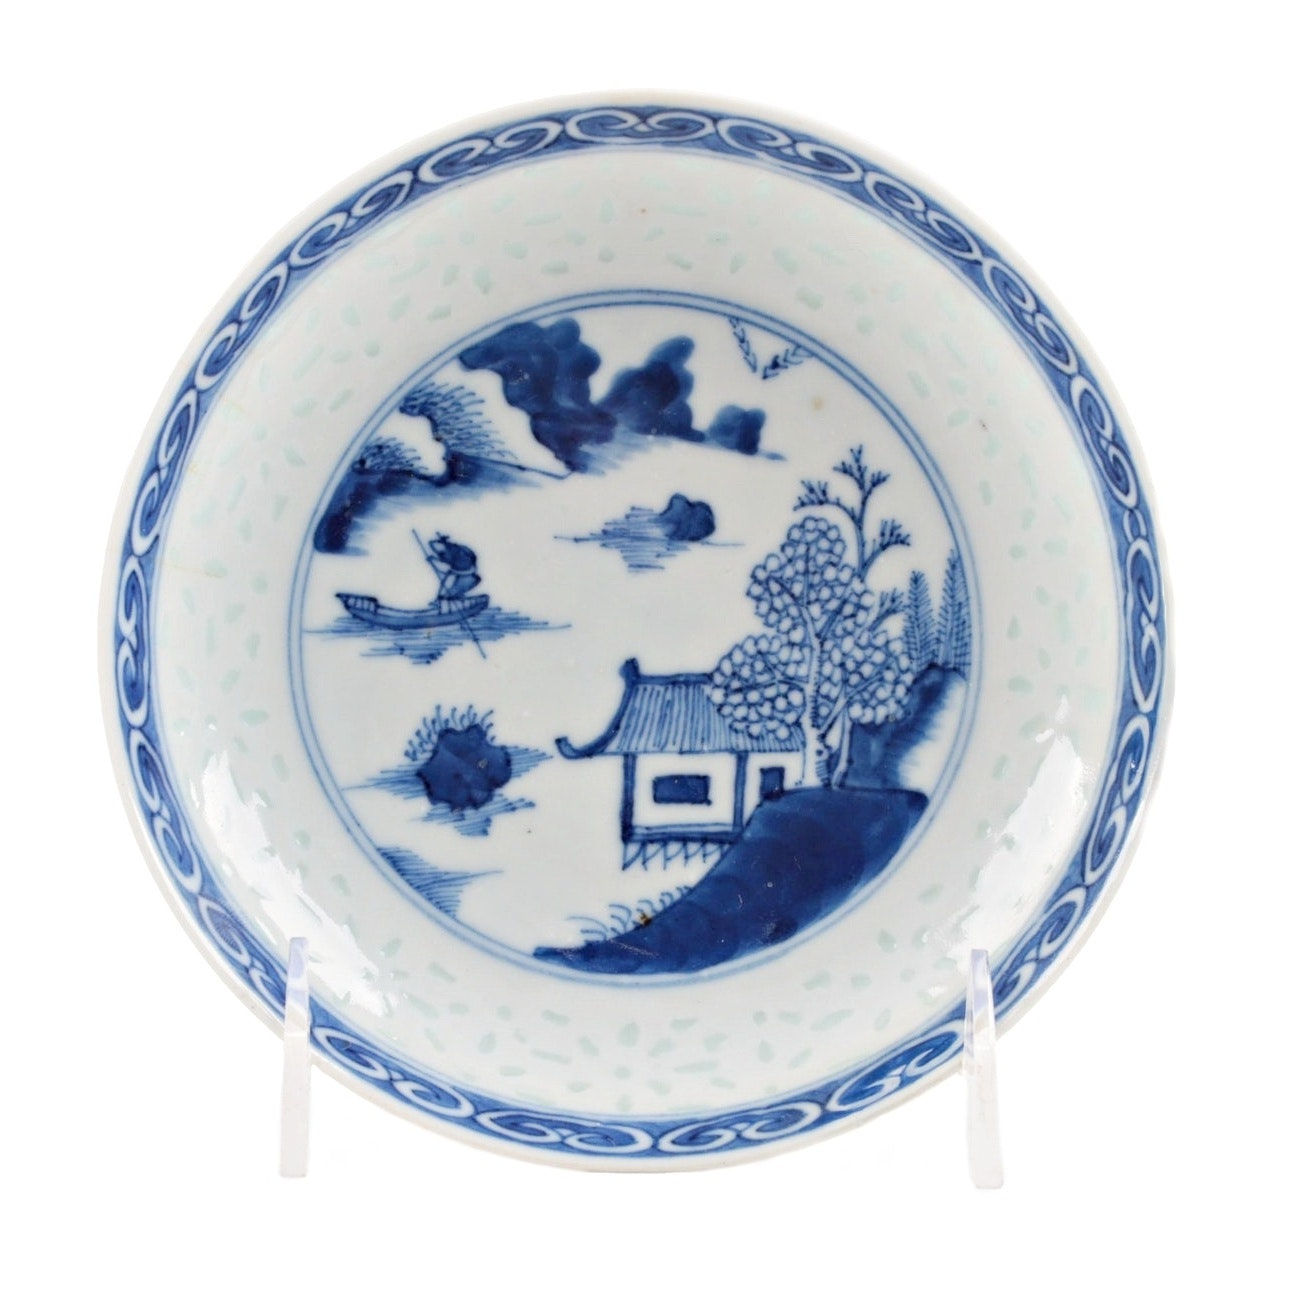 Chinese Blue and White Porcelain Rice Pattern Bowl, Republic Period